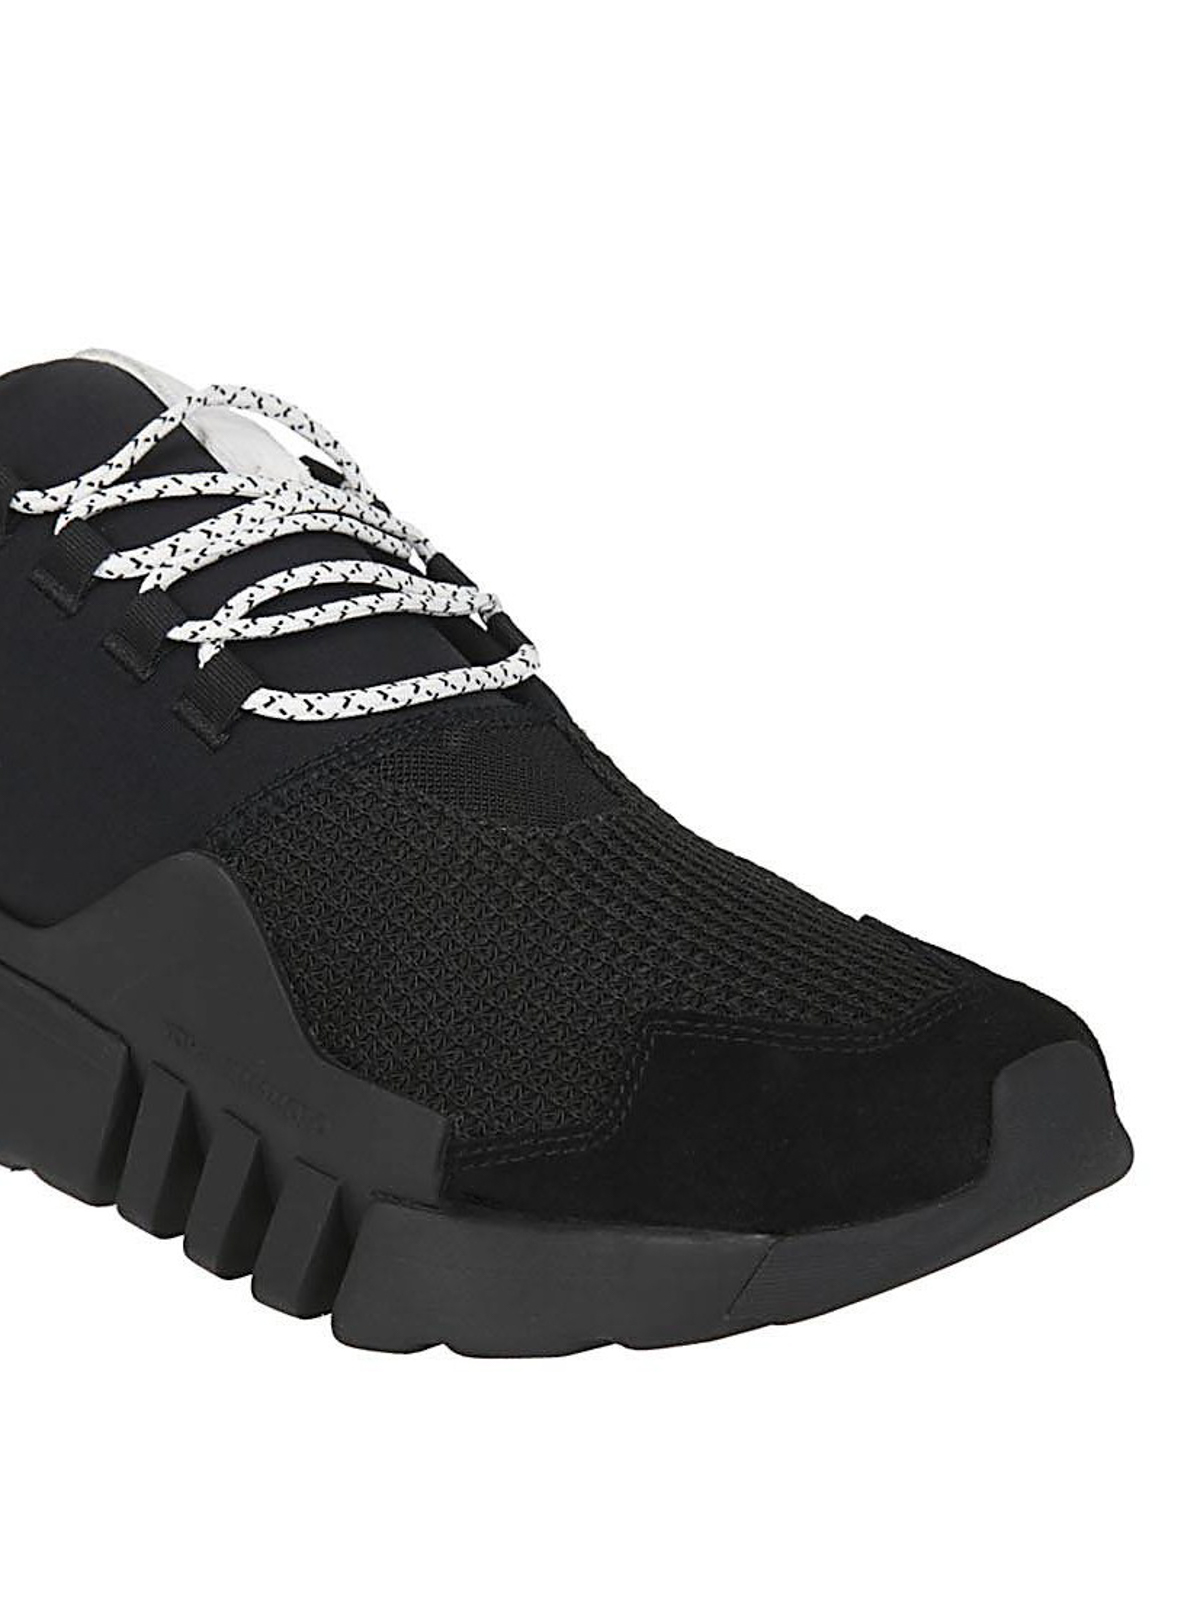 3a107b98d00f Adidas Y-3 - Ayero black sneakers - trainers - AC7202